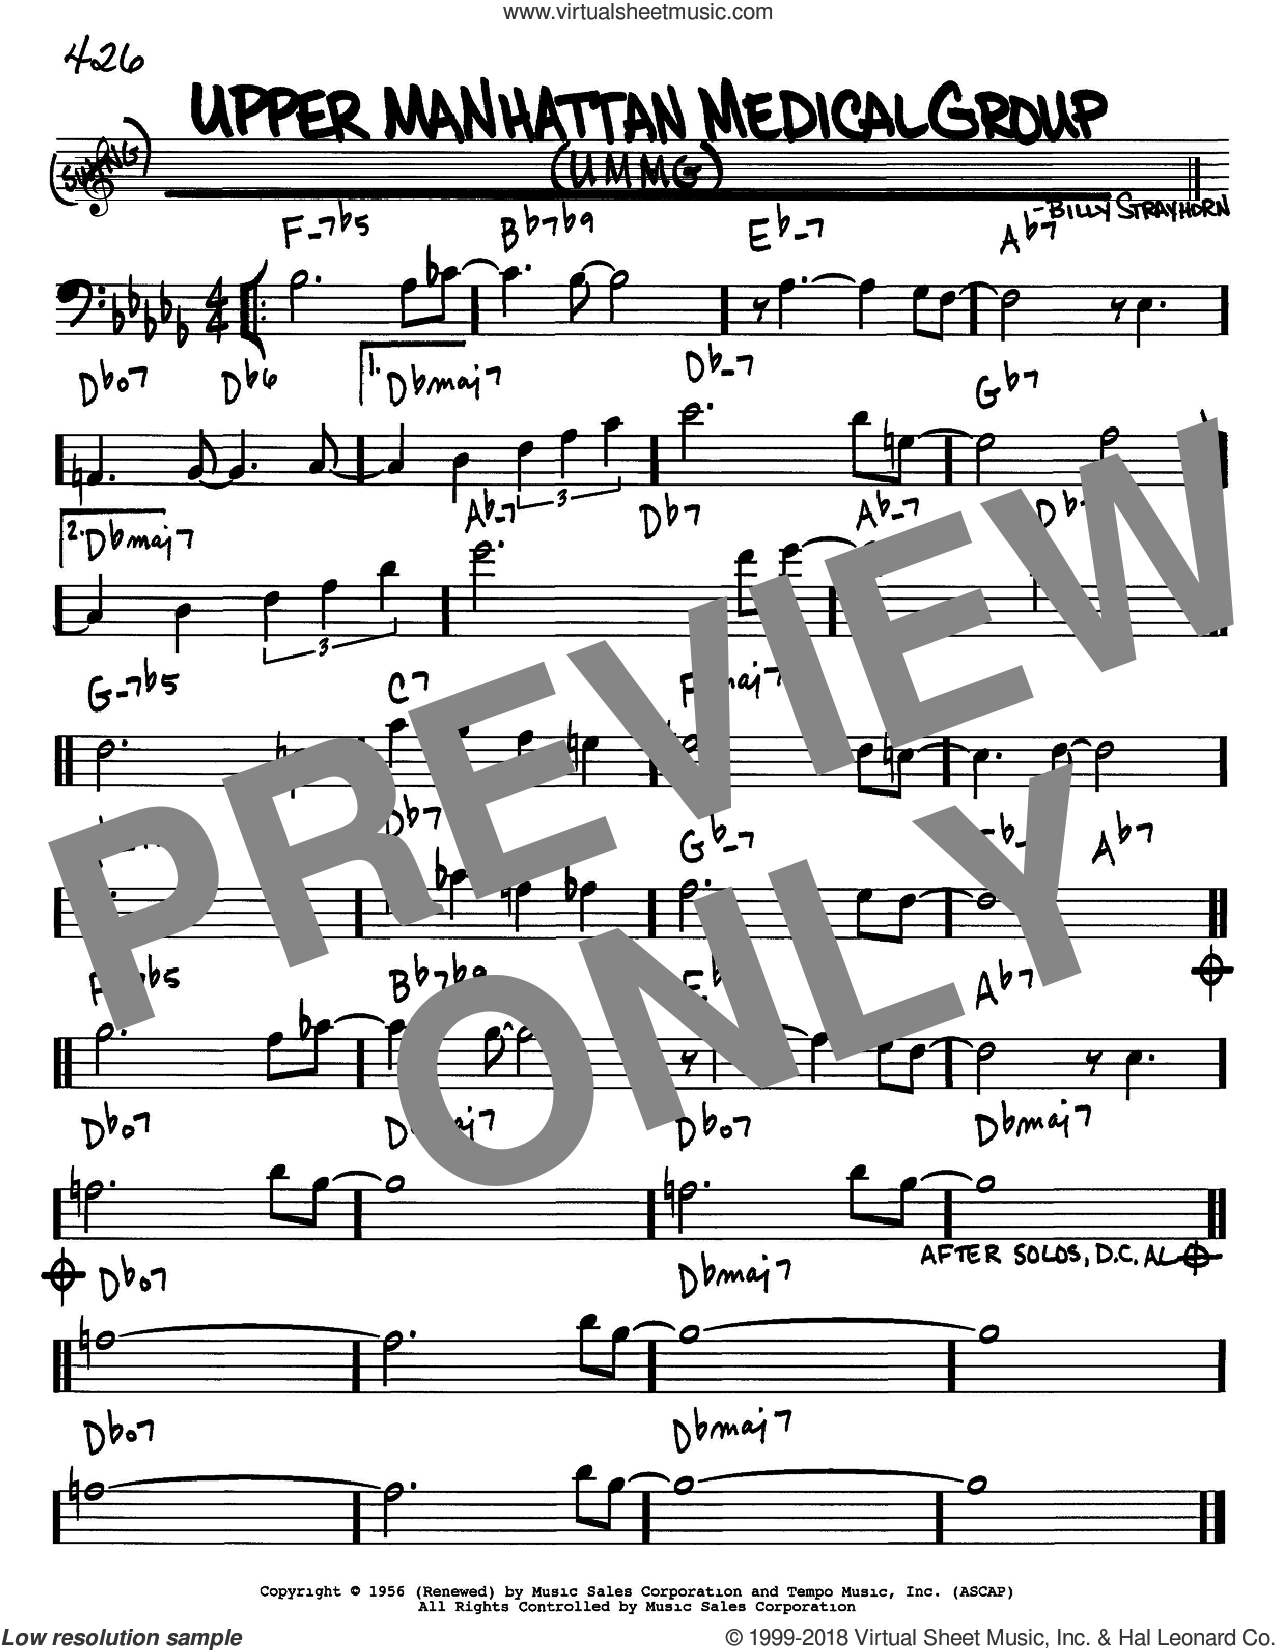 Upper Manhattan Medical Group (UMMG) sheet music for voice and other instruments (Bass Clef ) by Billy Strayhorn